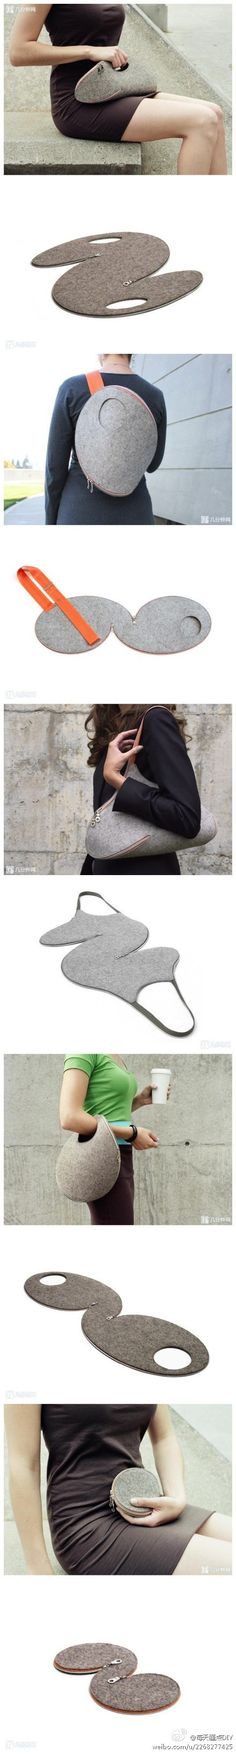 Just fabulous! Clever bag design